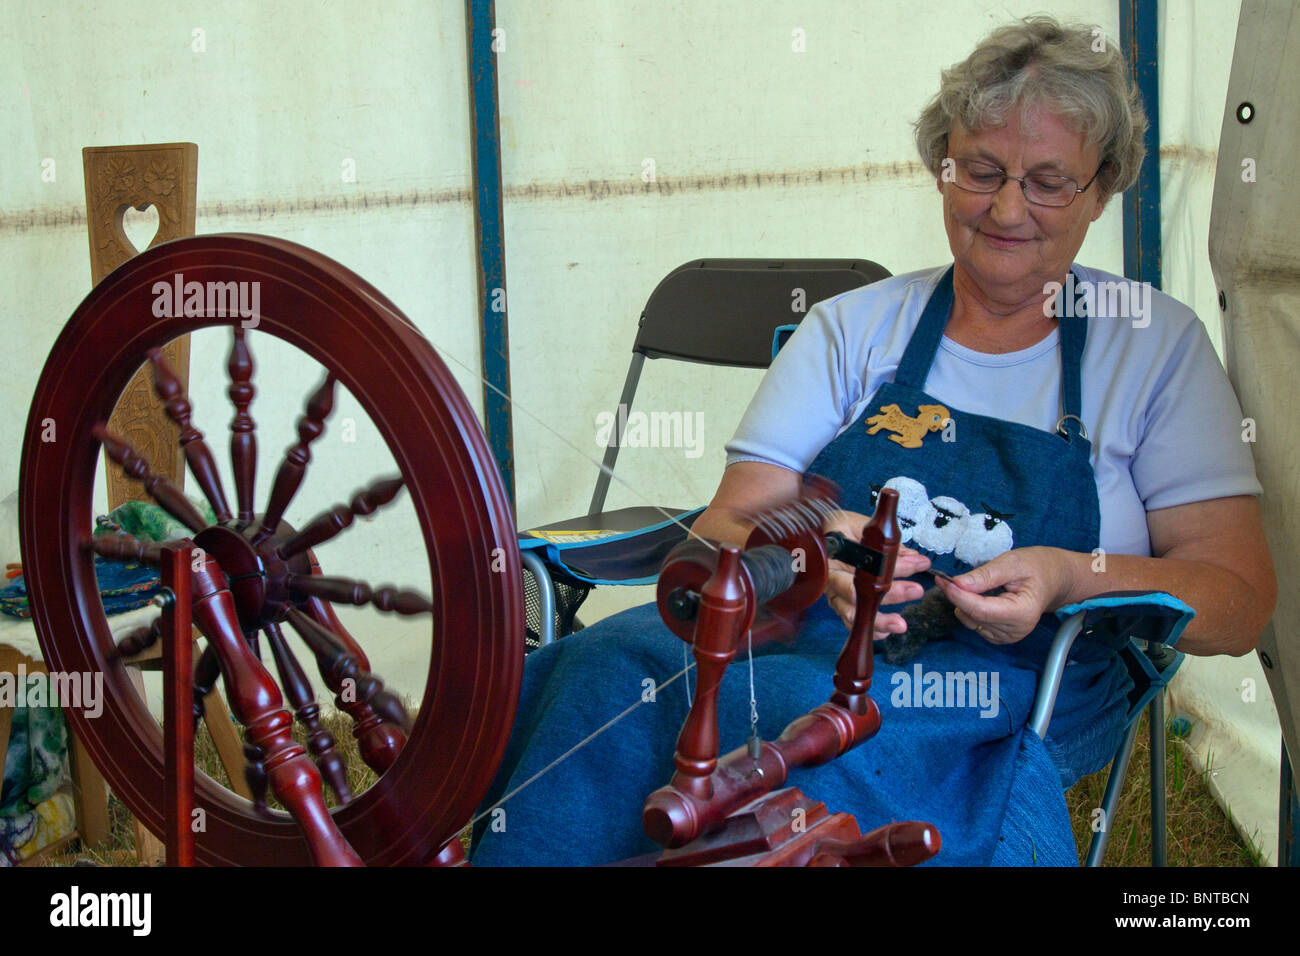 Old dear using an ancient spinning wheel, showing the art of wool spinning - Stock Image